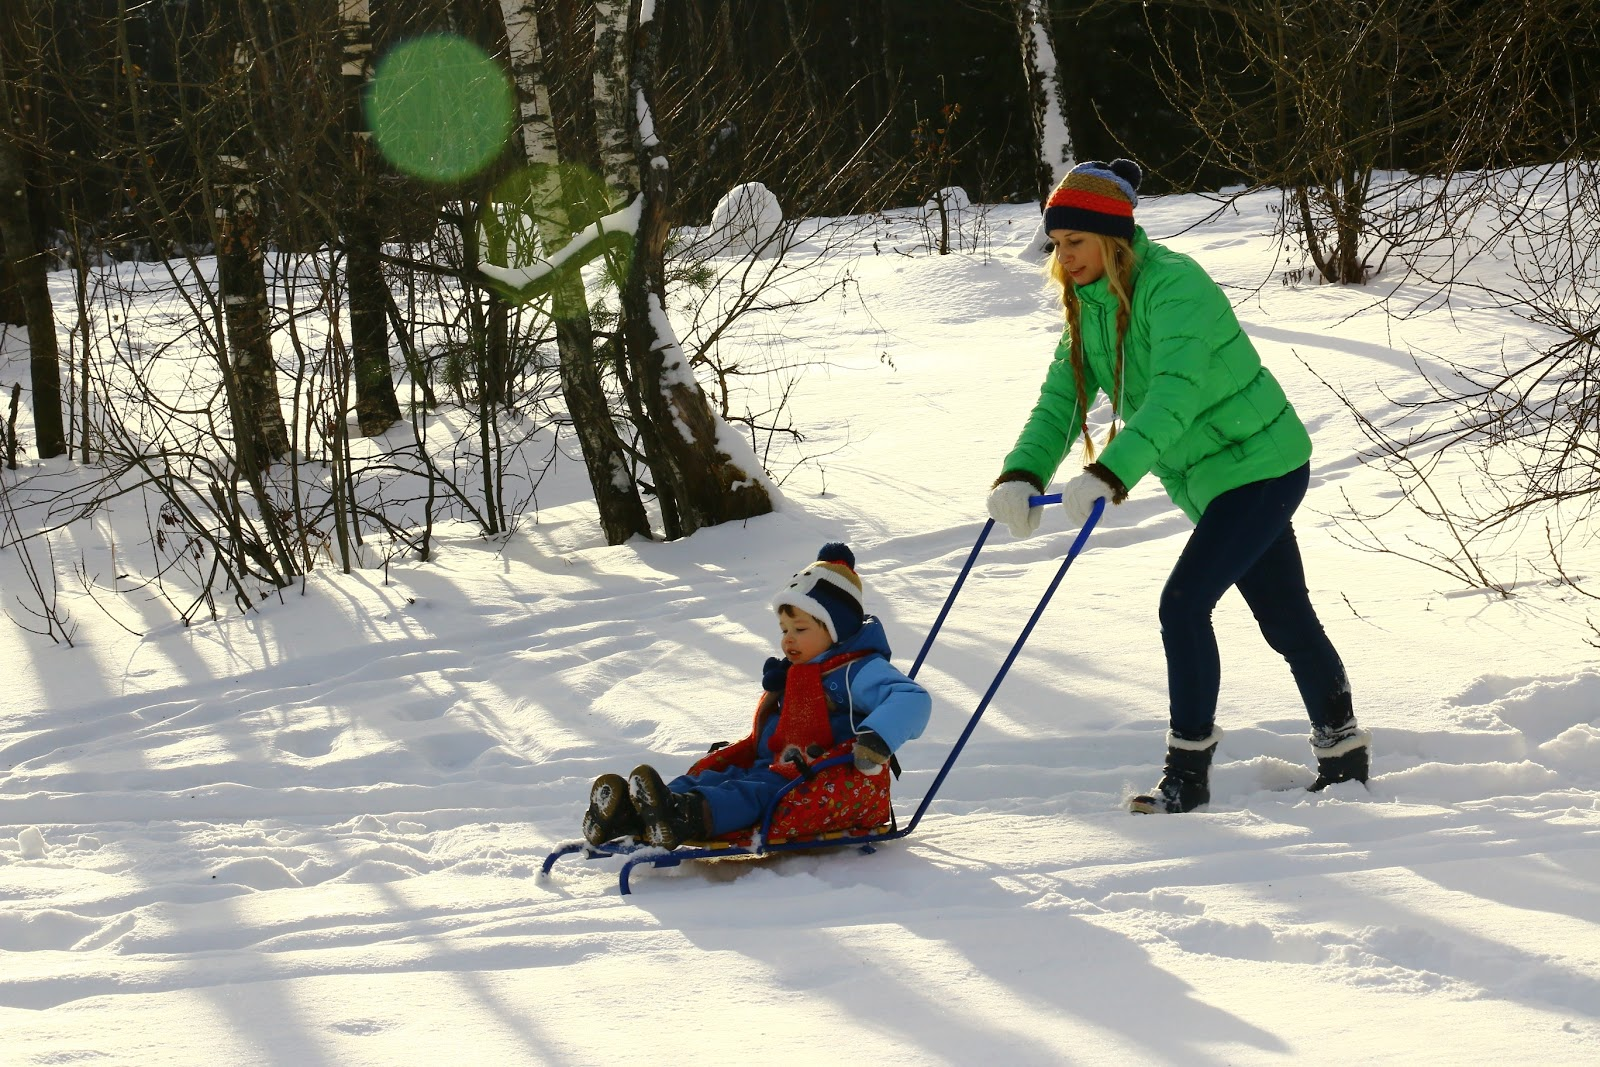 mother pushing child through snow on a sled